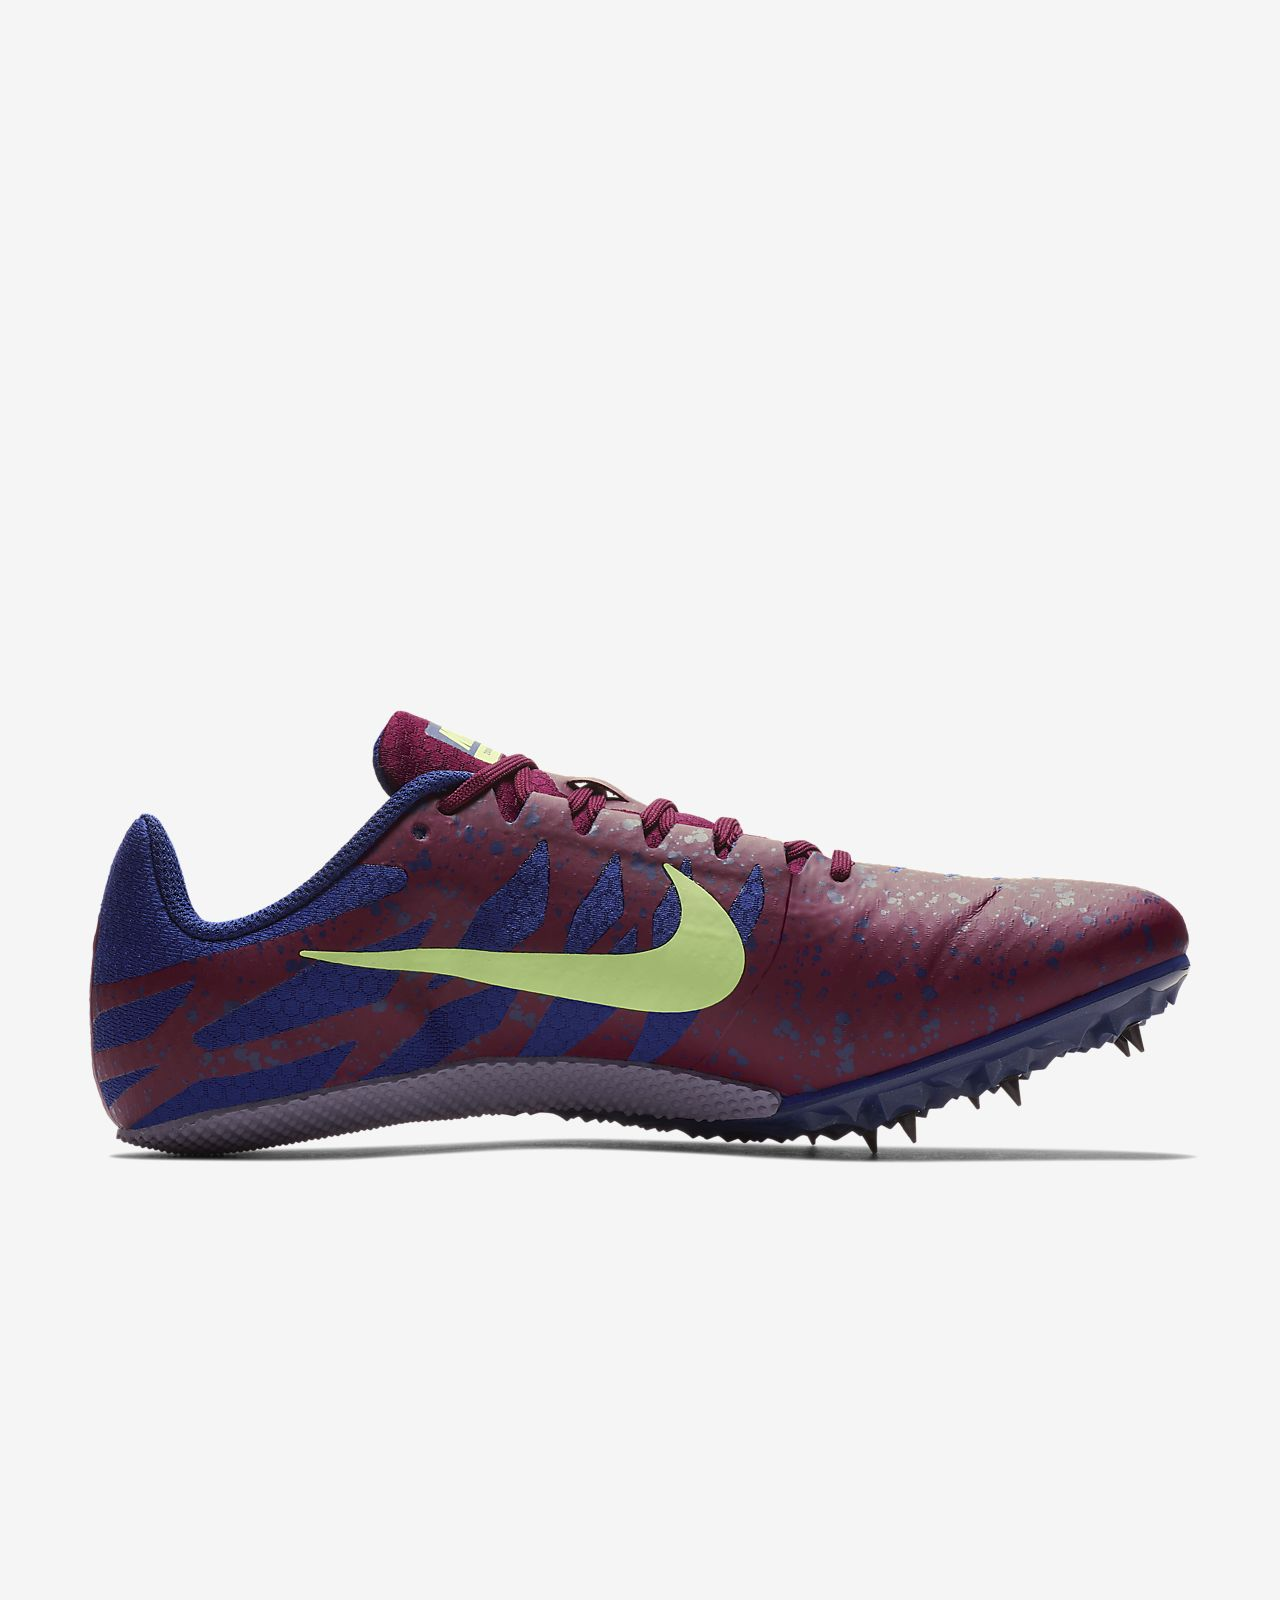 new product db643 a40e0 ... Chaussure de course à pointes mixte Nike Zoom Rival S 9